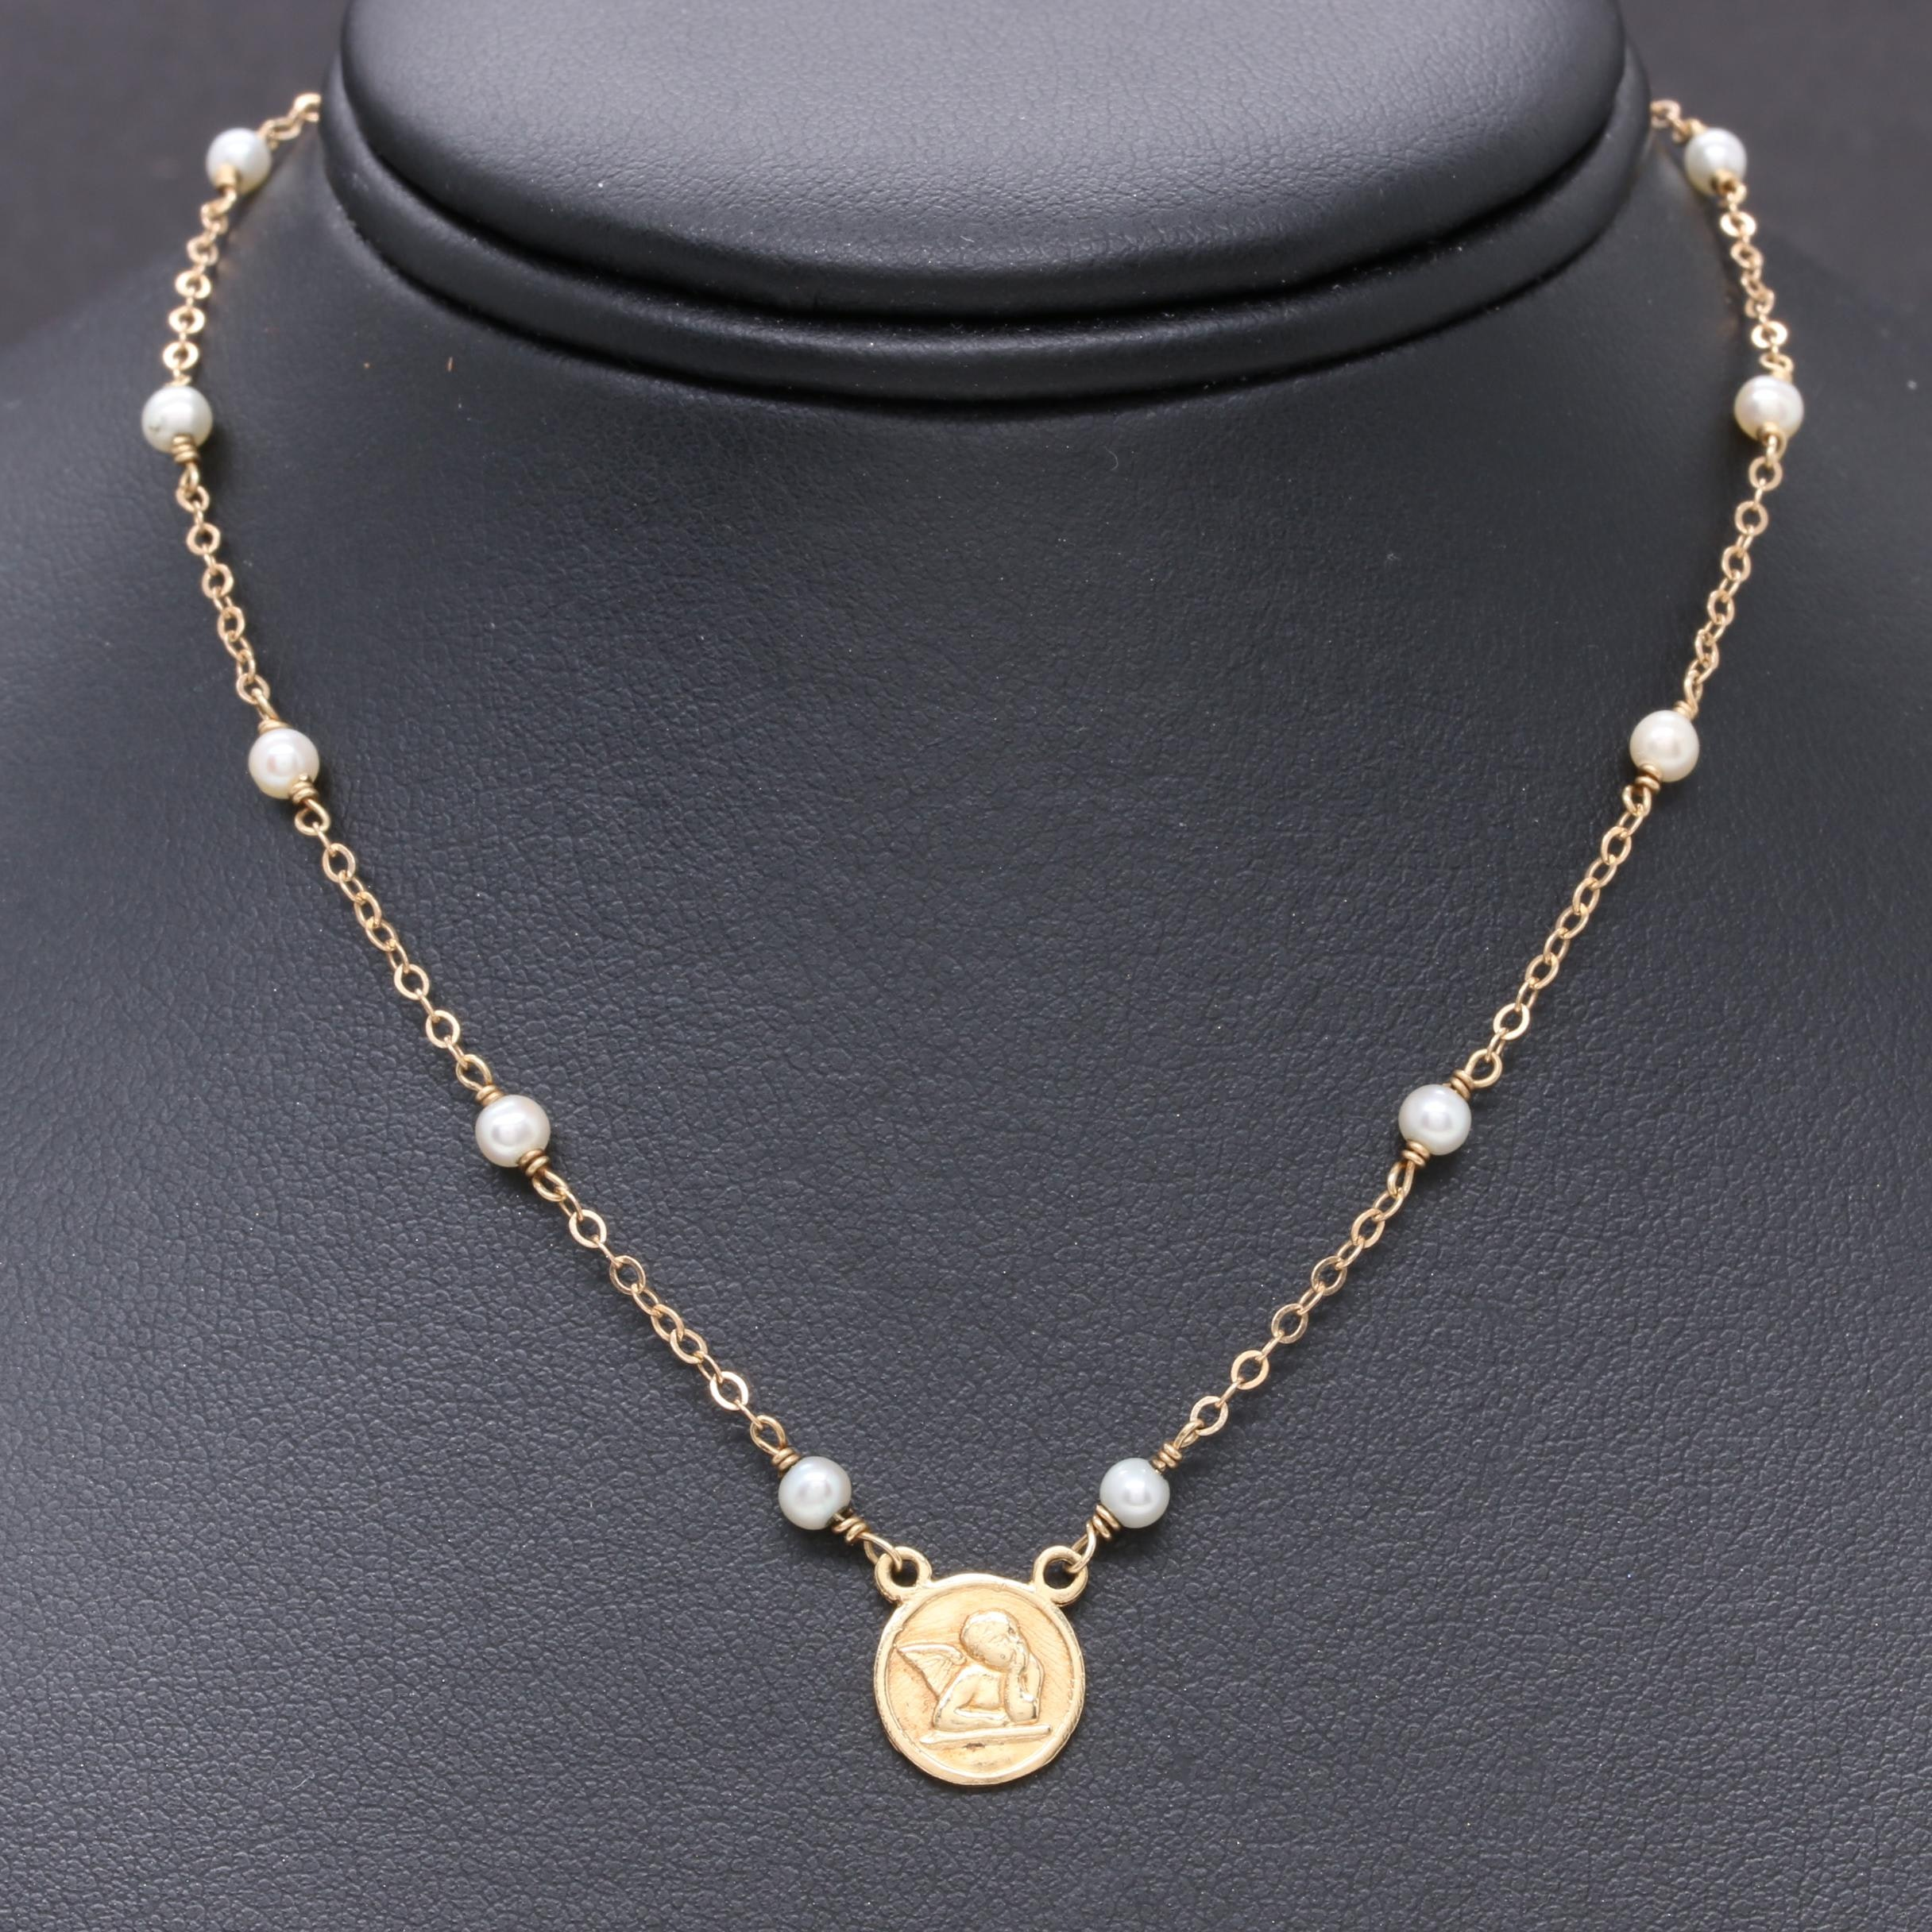 14K Yellow Gold and Cultured Pearl Child's Necklace